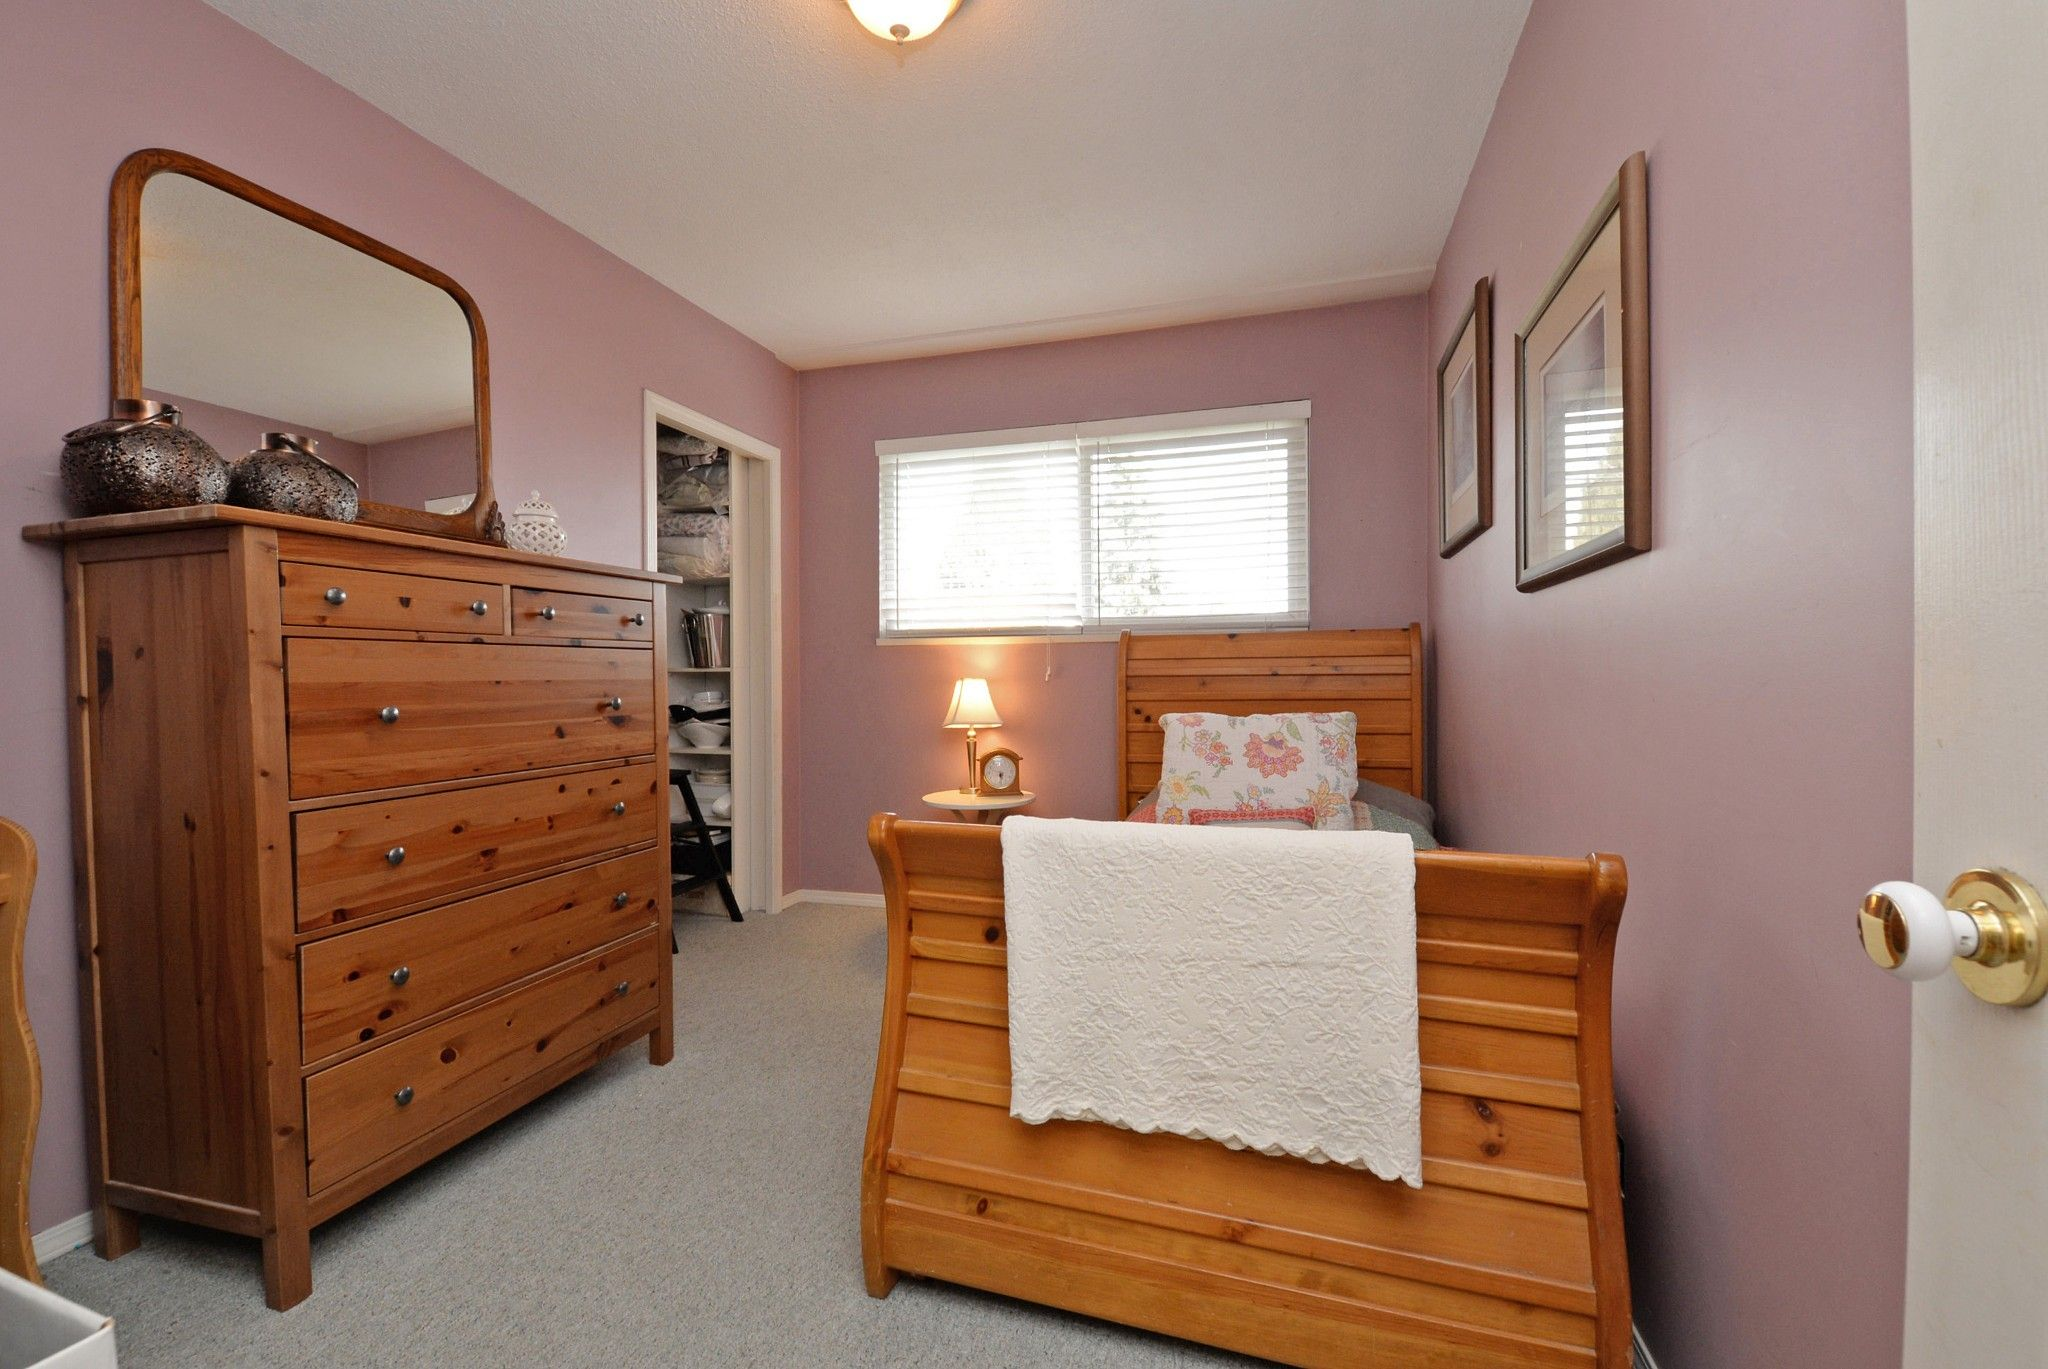 Photo 9: Photos: 5166 44 Avenue in Delta: Ladner Elementary House for sale (Ladner)  : MLS®# R2239309